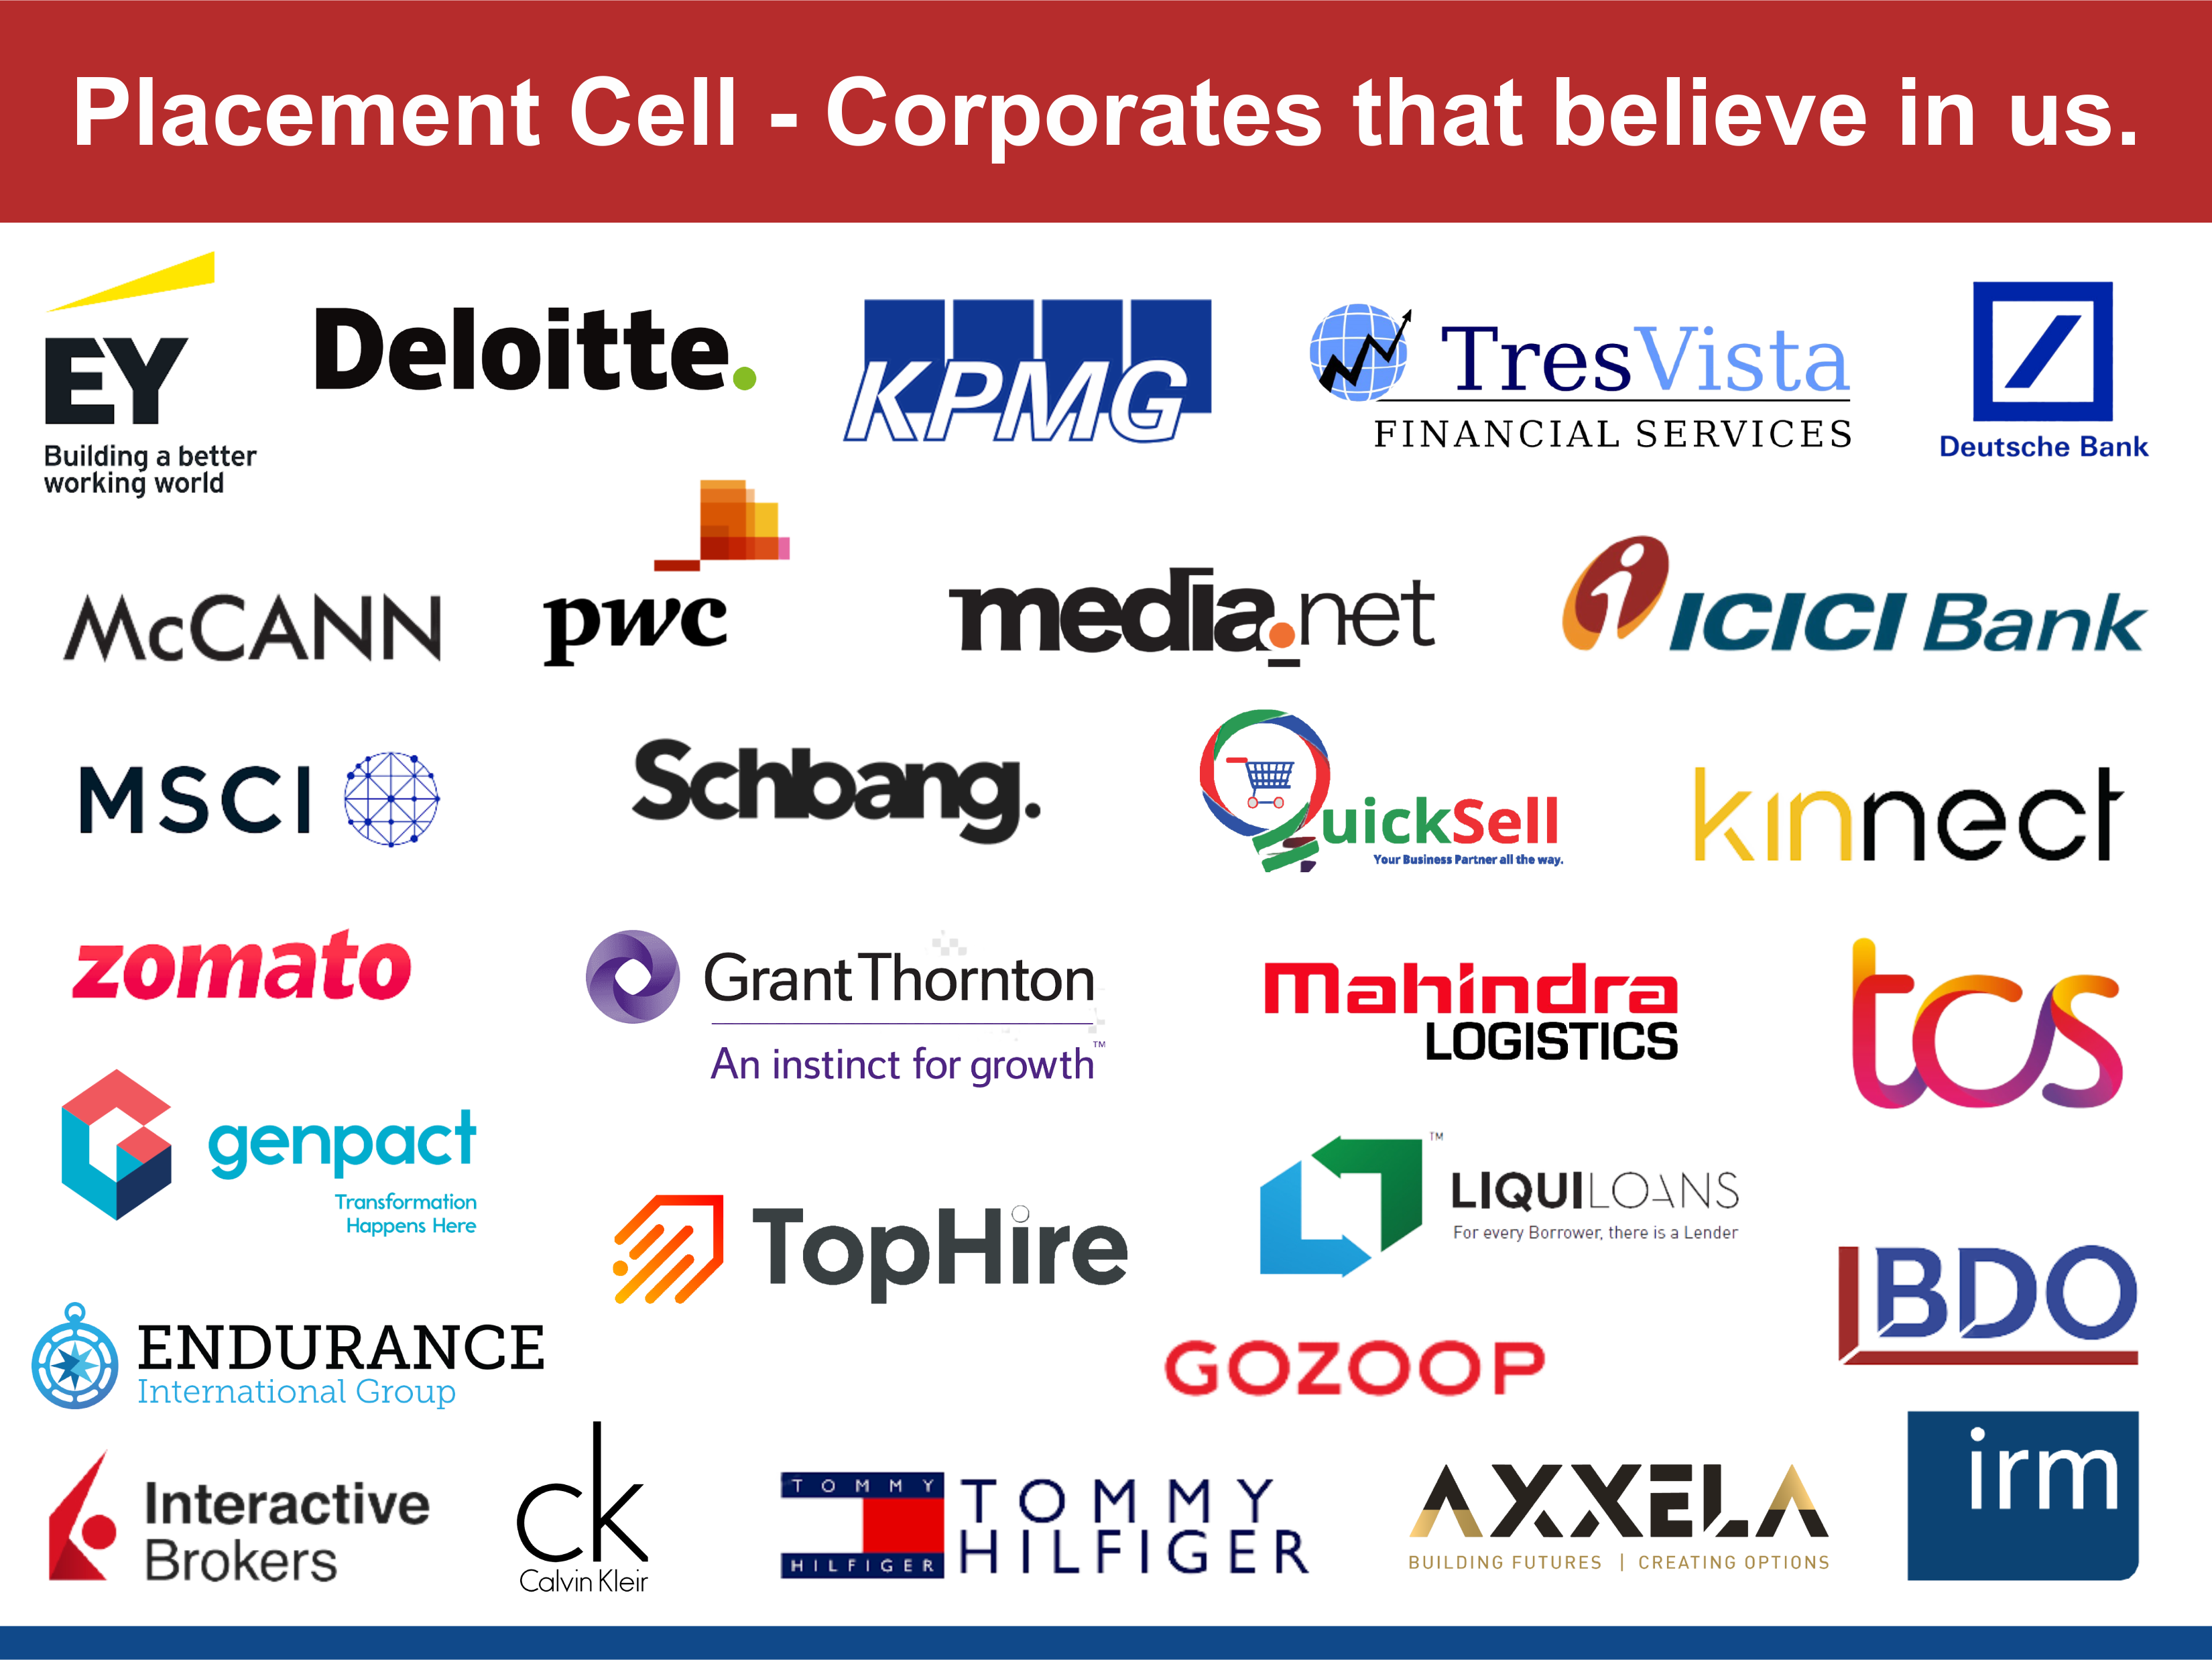 Placement - Corporates that believe in us